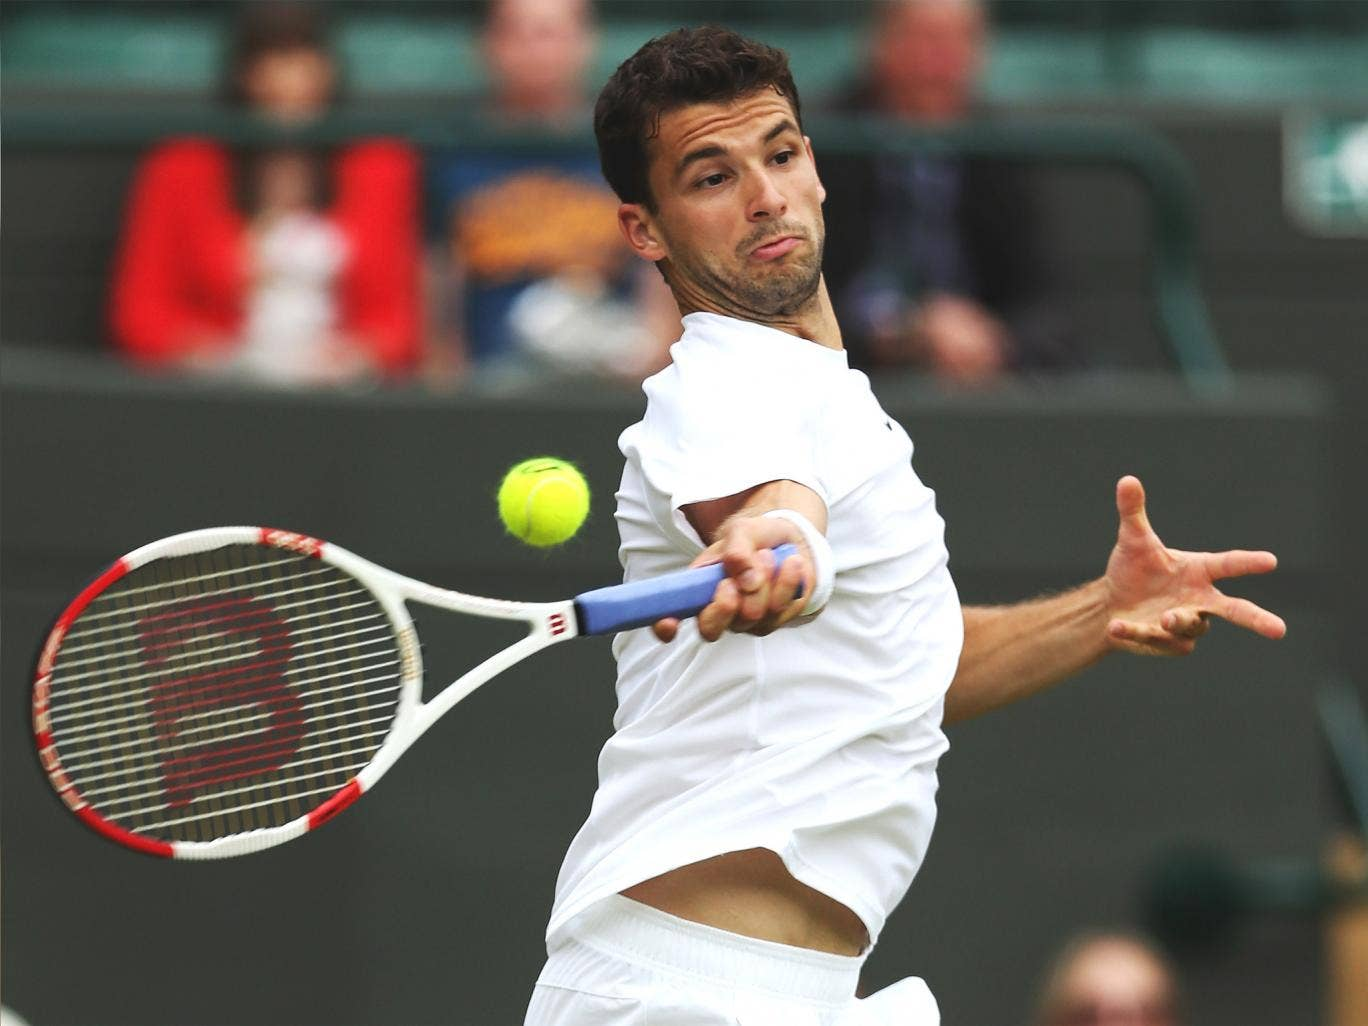 Grigor Dimitrov's talent is now being matched by his results